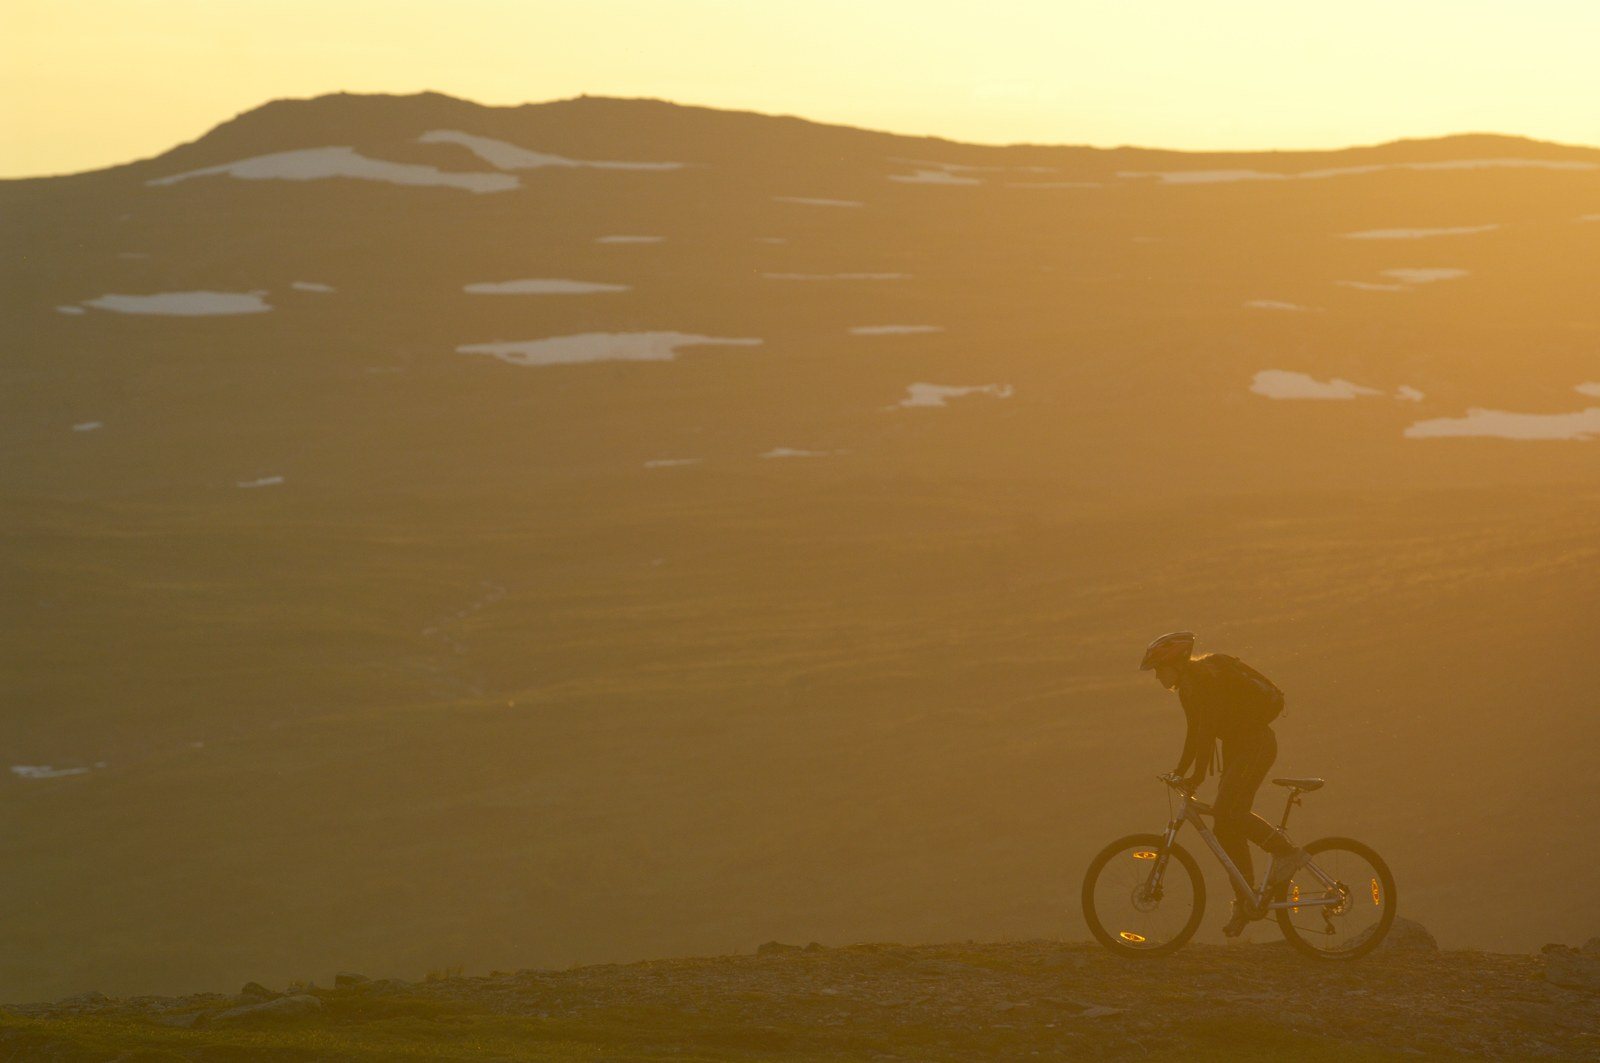 Midnight sun biking